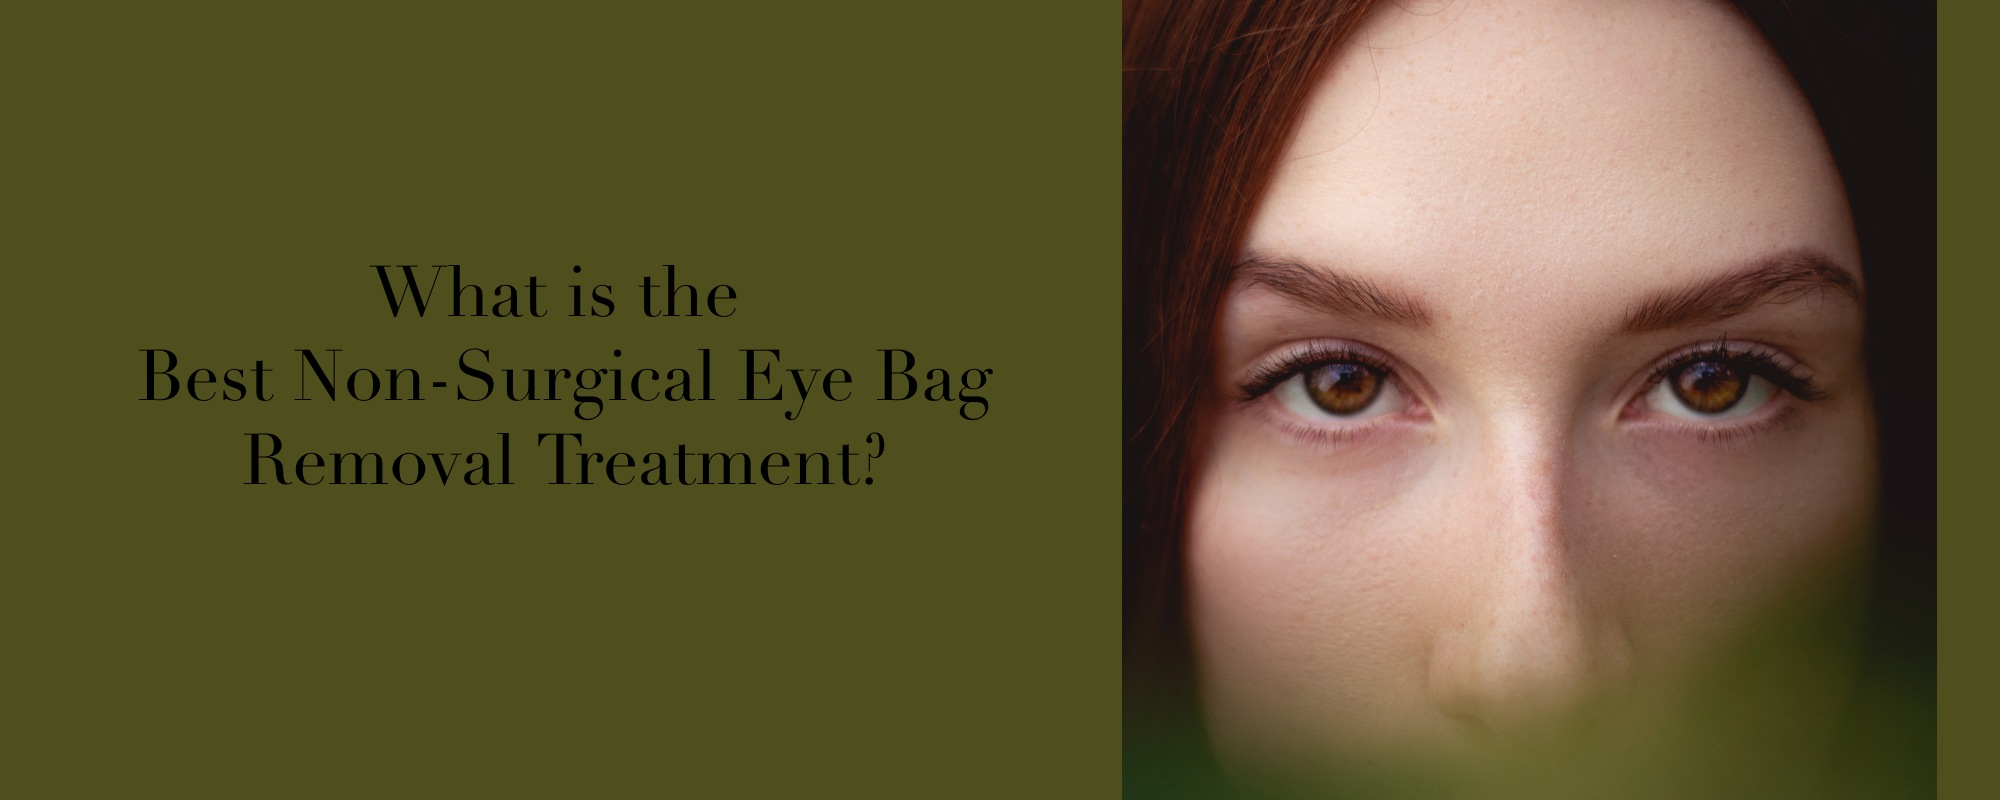 Eye bag removal treatment in Melbourne